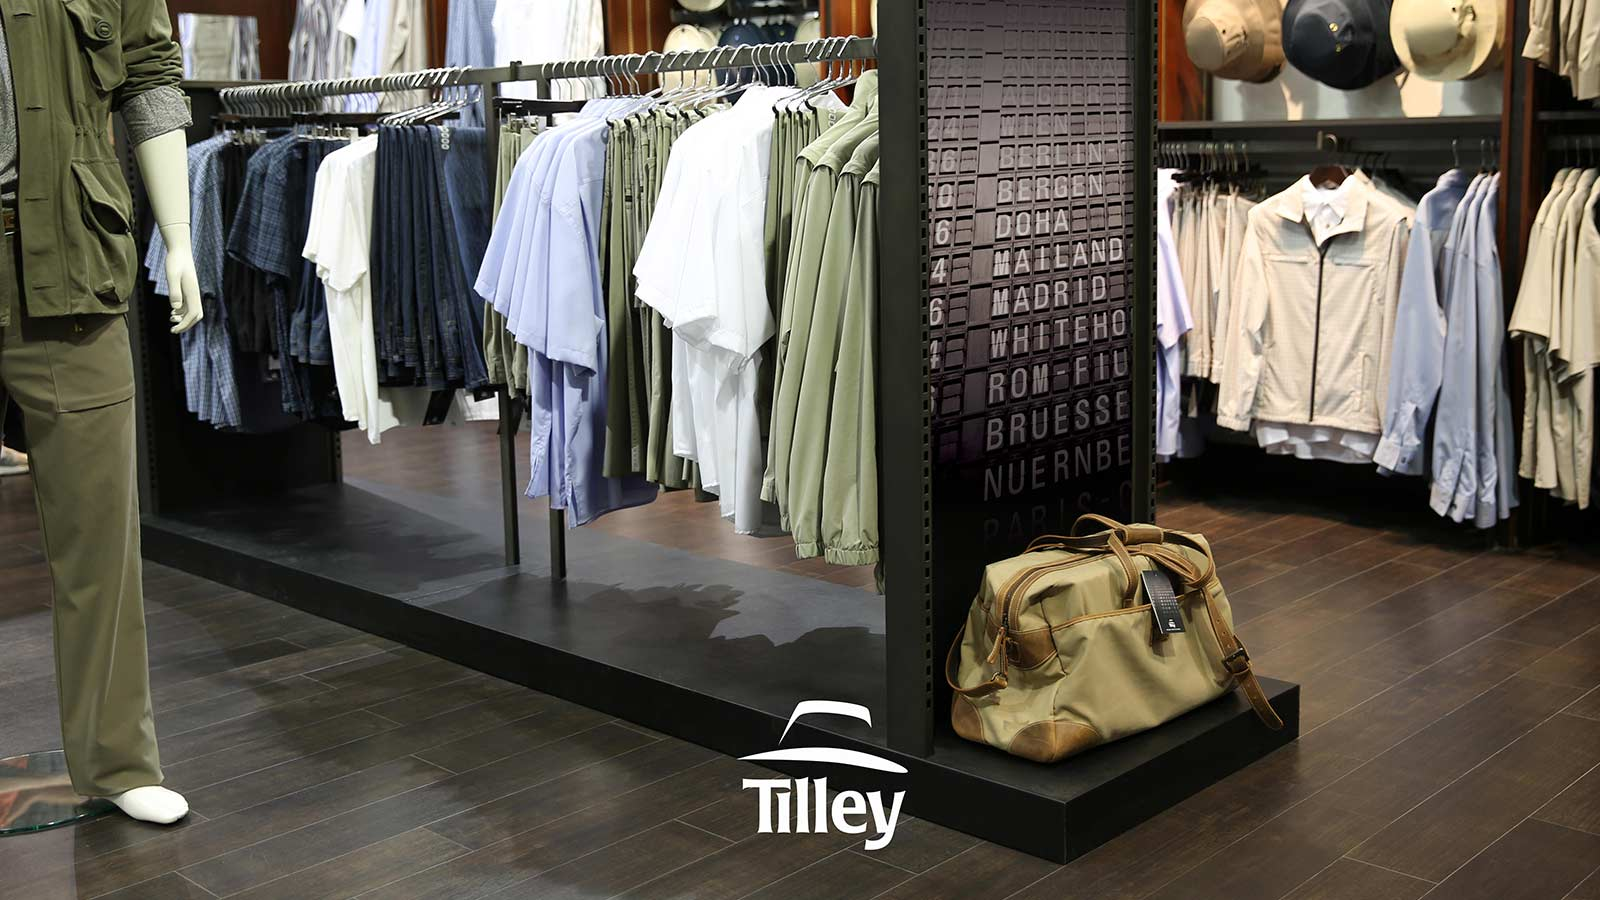 Tilley | Integrated Brand Campaign | Advertising, Brand Strategy, Branding, Broadcast Production, Digital Innovation, Digital Marketing, E-Commerce, Local Store Marketing, Mobile, Social Media